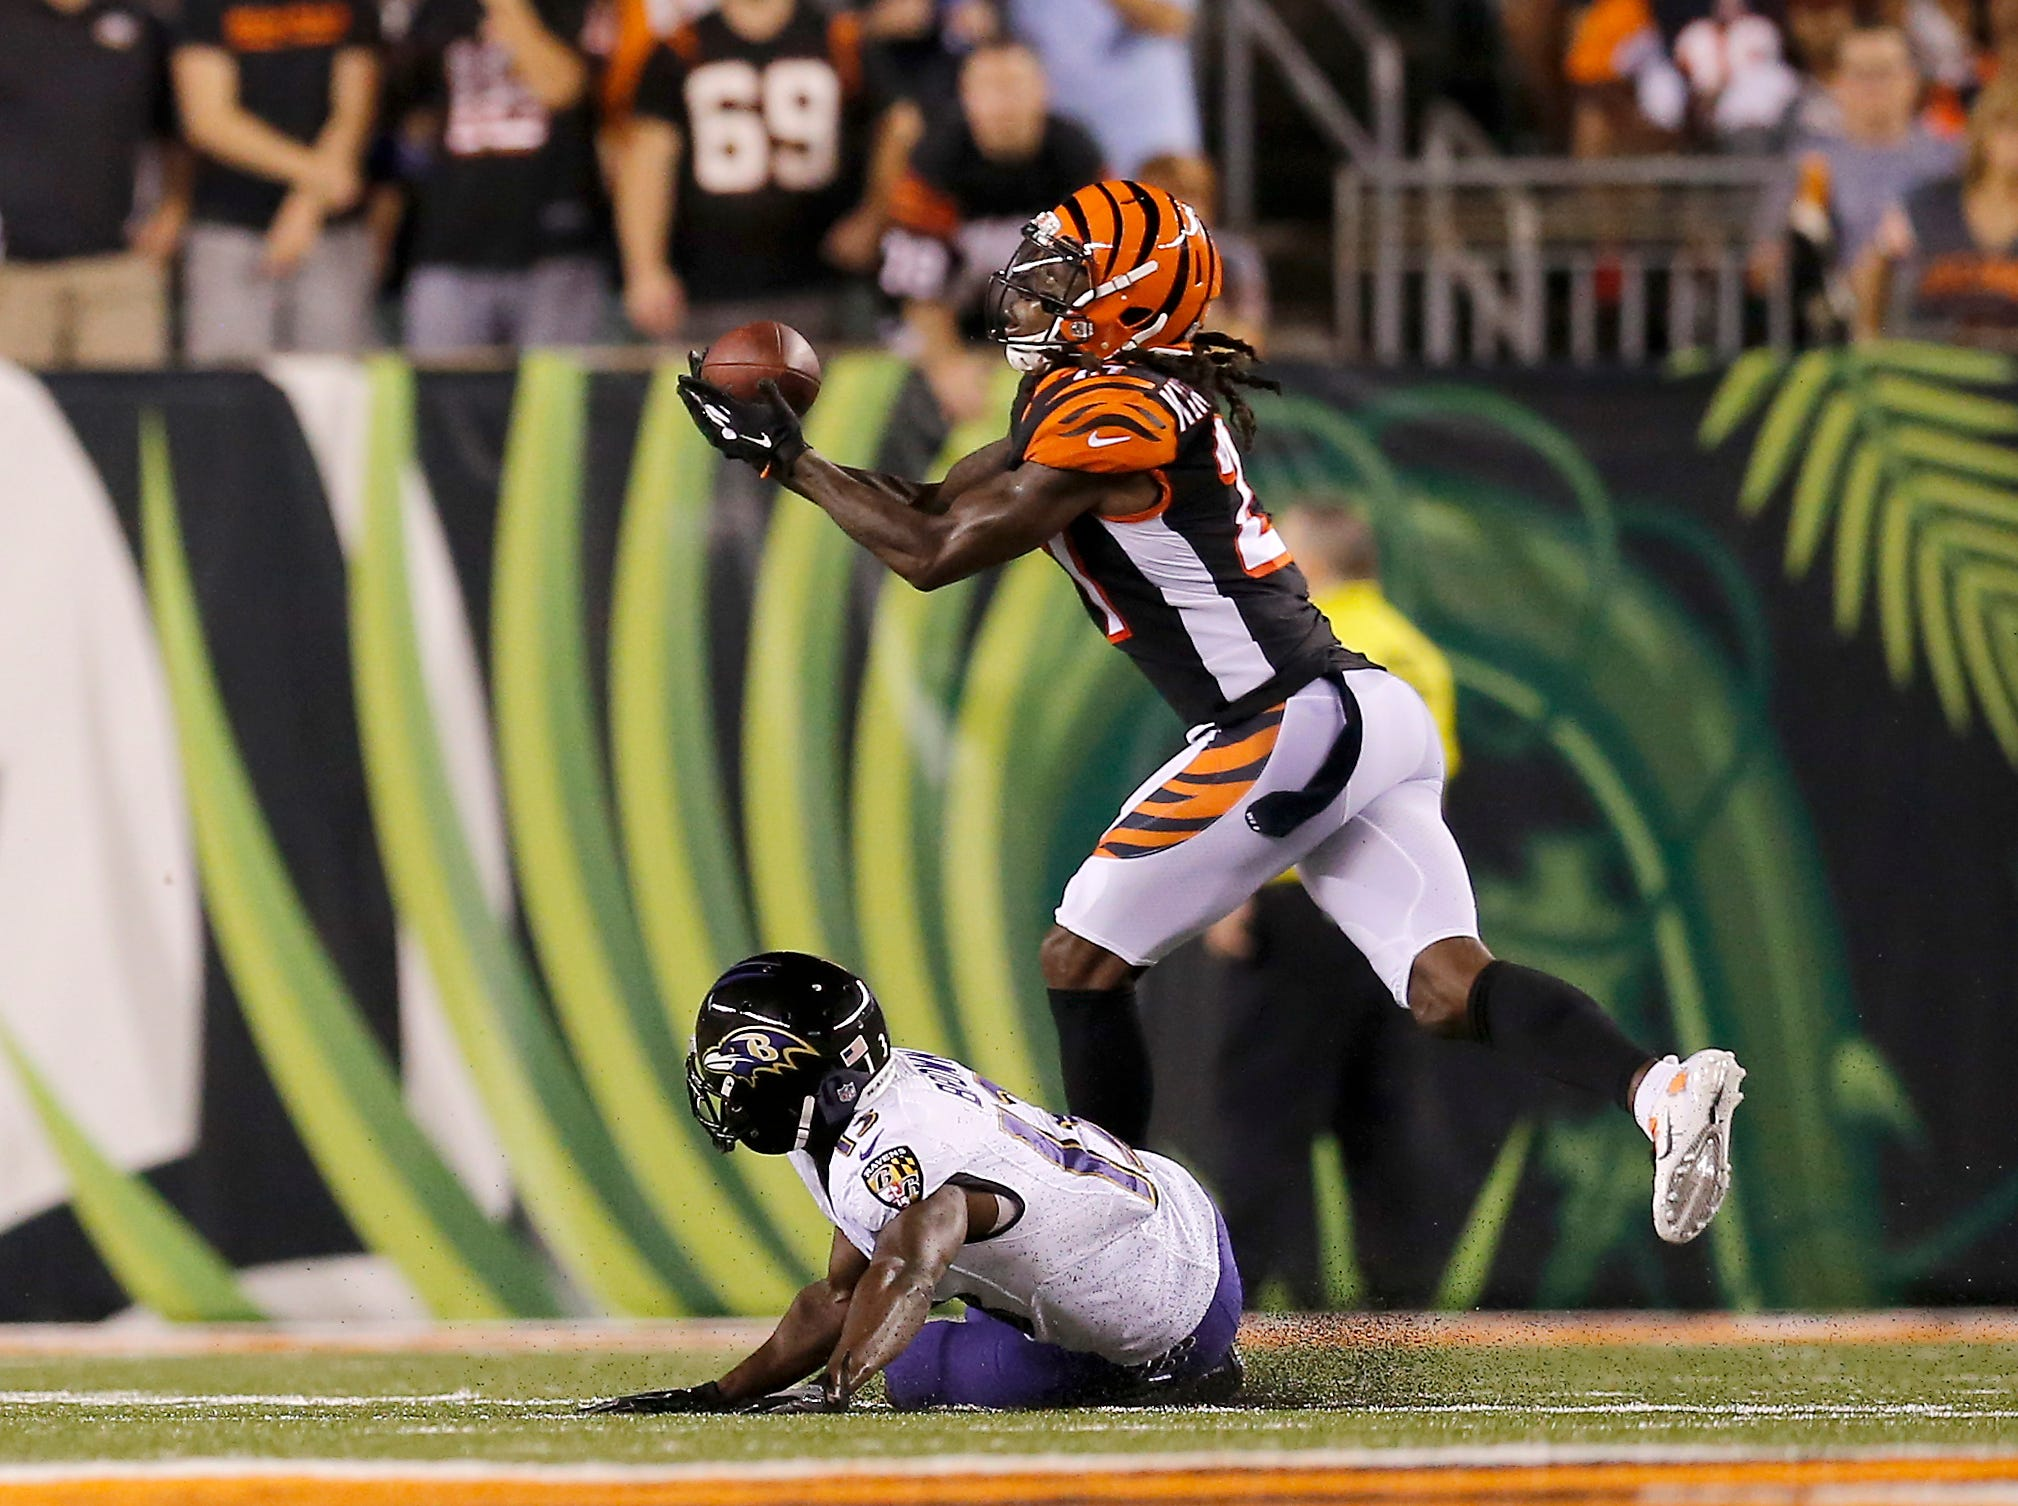 Cincinnati Bengals defensive back Dre Kirkpatrick (27) nearly intercepts a deep pass intended for Baltimore Ravens wide receiver John Brown (13) in the second quarter of the NFL Week 2 game between the Cincinnati Bengals and the Baltimore Ravens at Paul Brown Stadium in downtown Cincinnati on Thursday, Sept. 13, 2018. The Bengals led 28-14 at halftime.